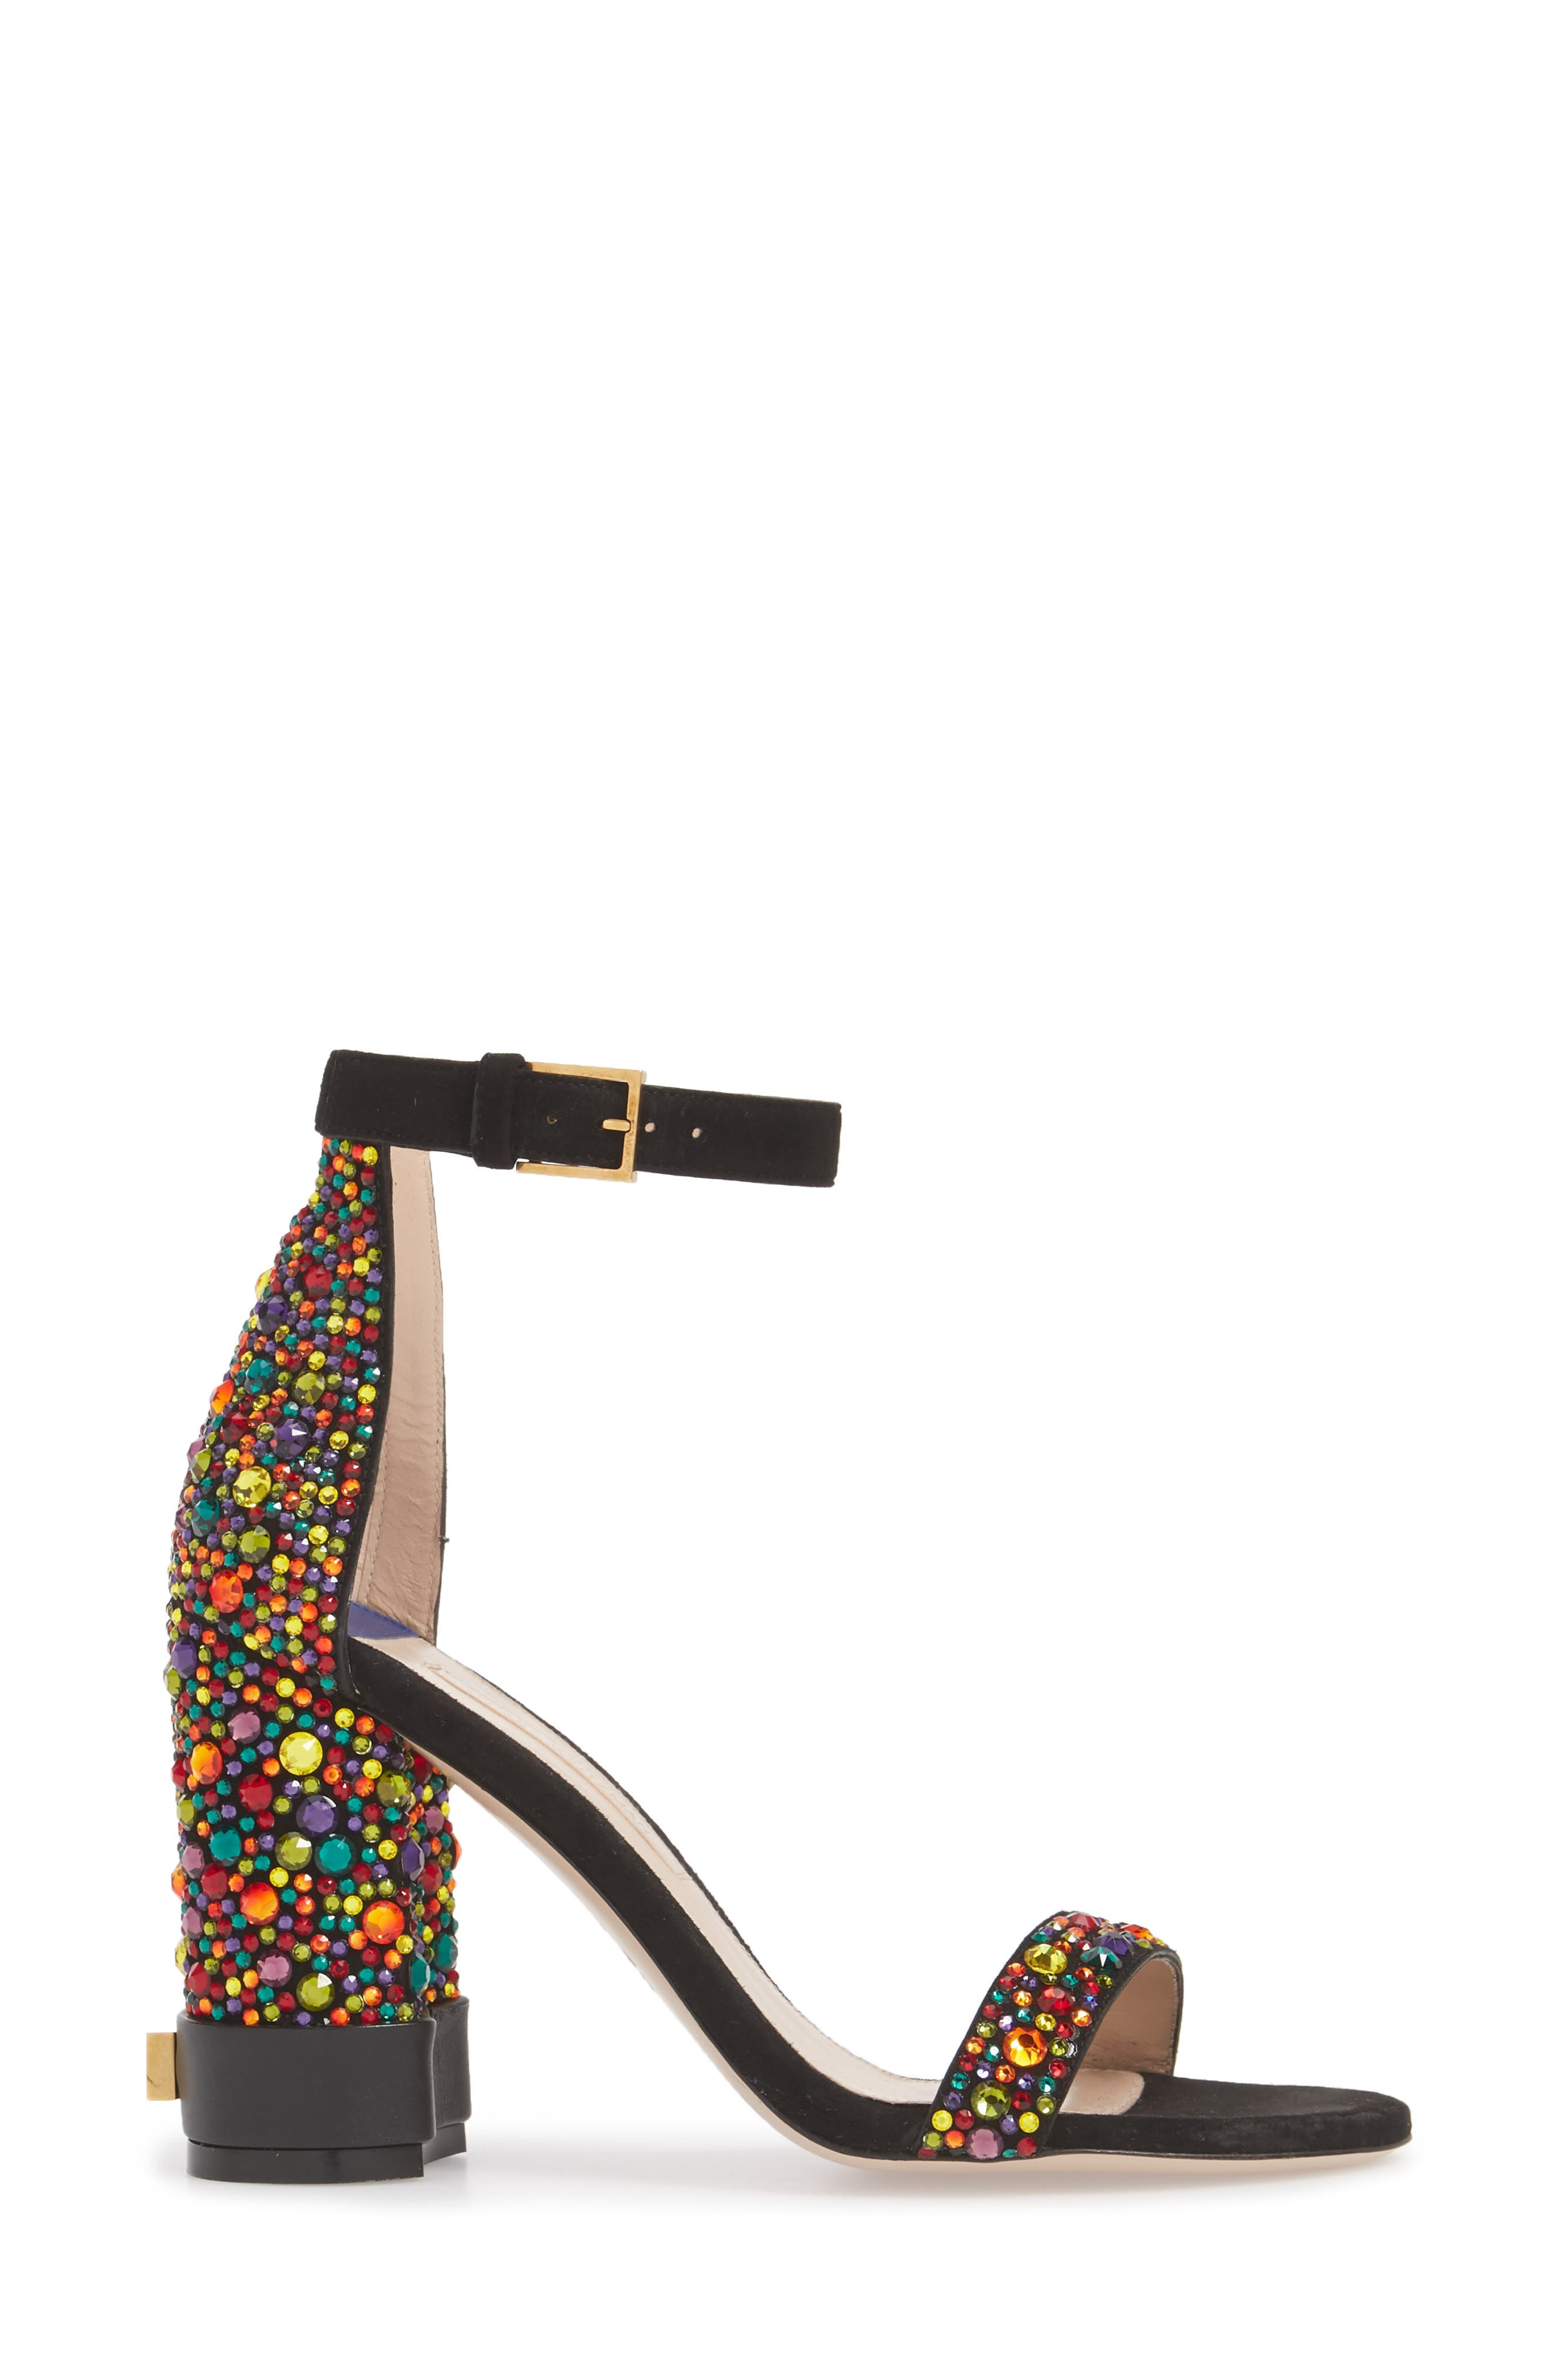 Supernova Embellished Sandal,                             Alternate thumbnail 4, color,                             Black Suede